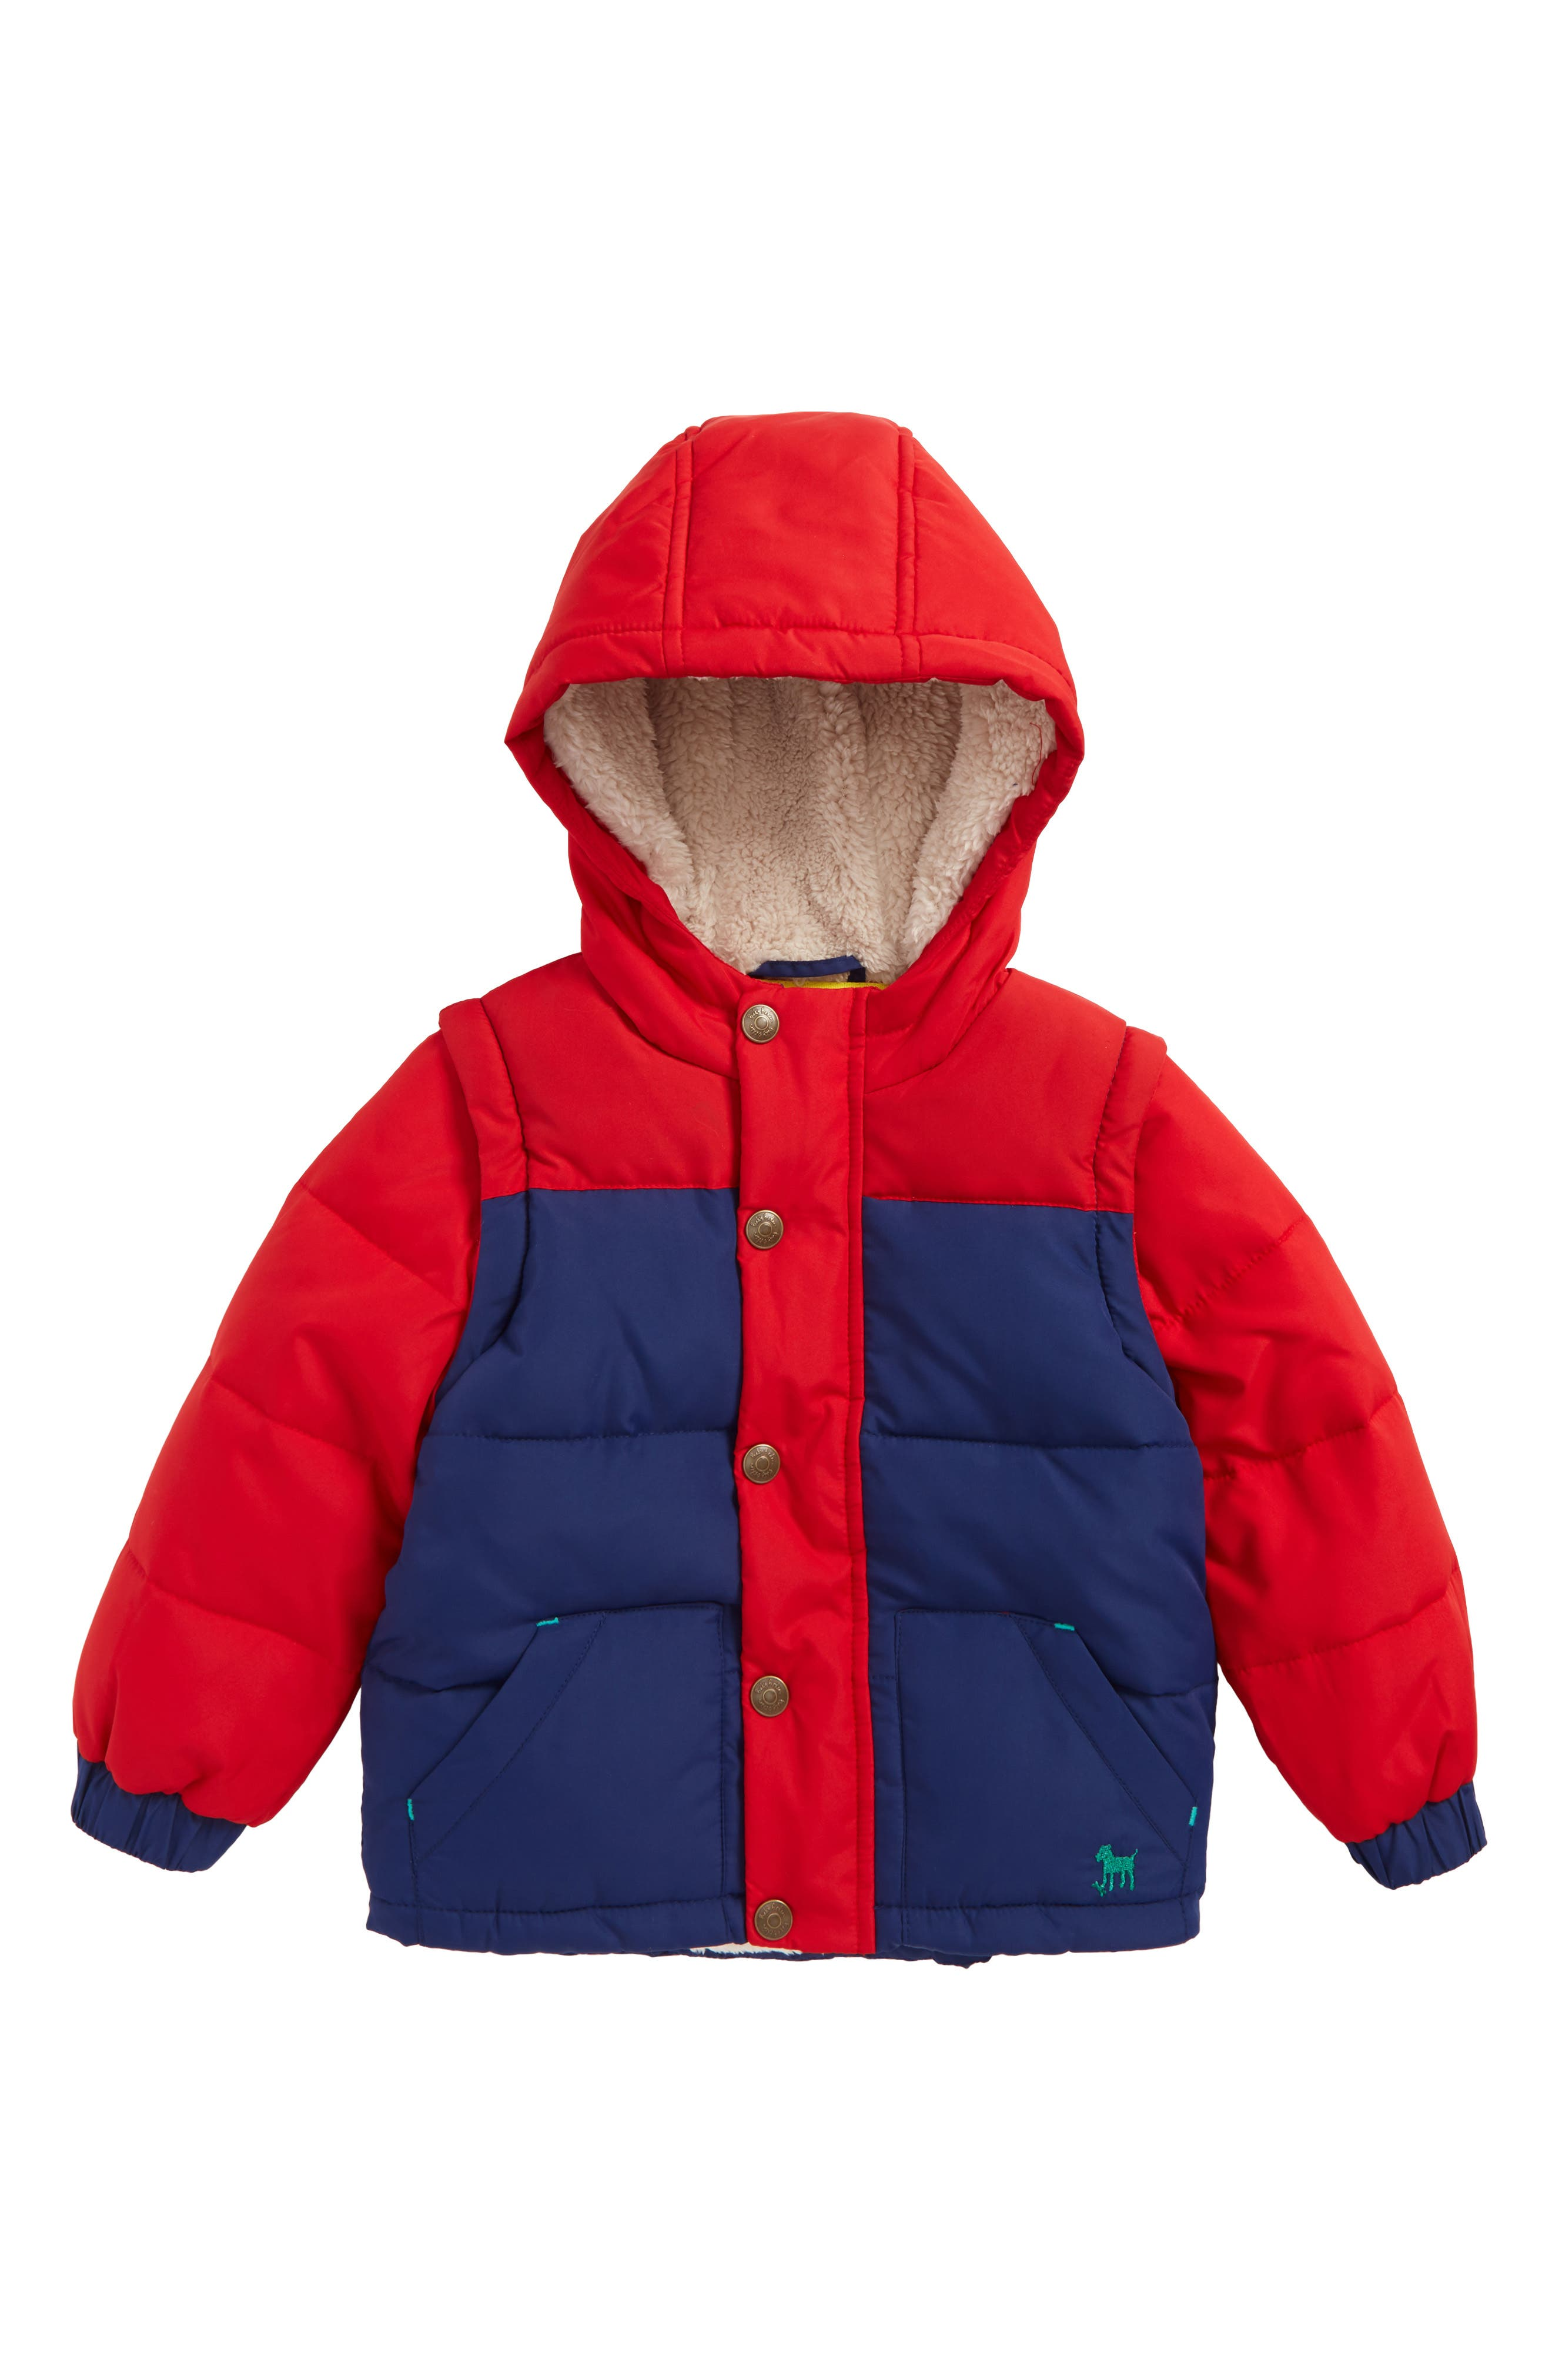 2-in-1 Cozy Jacket,                             Main thumbnail 1, color,                             Red Engine Red